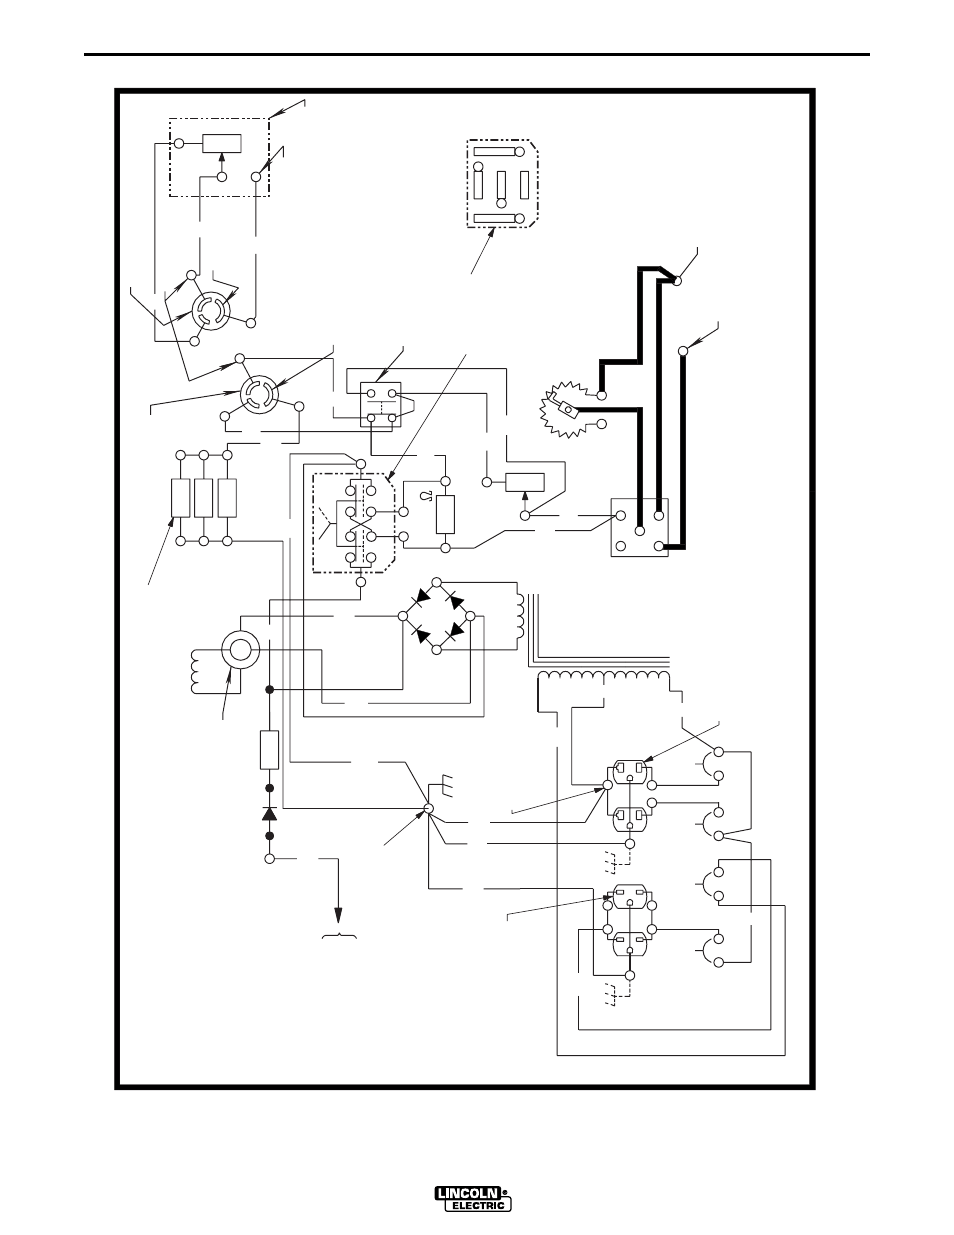 medium resolution of wiring diagrams sae400 weld n air control wiring diagram sae 400 weld n air lincoln electric im581 sae400 user manual page 28 34